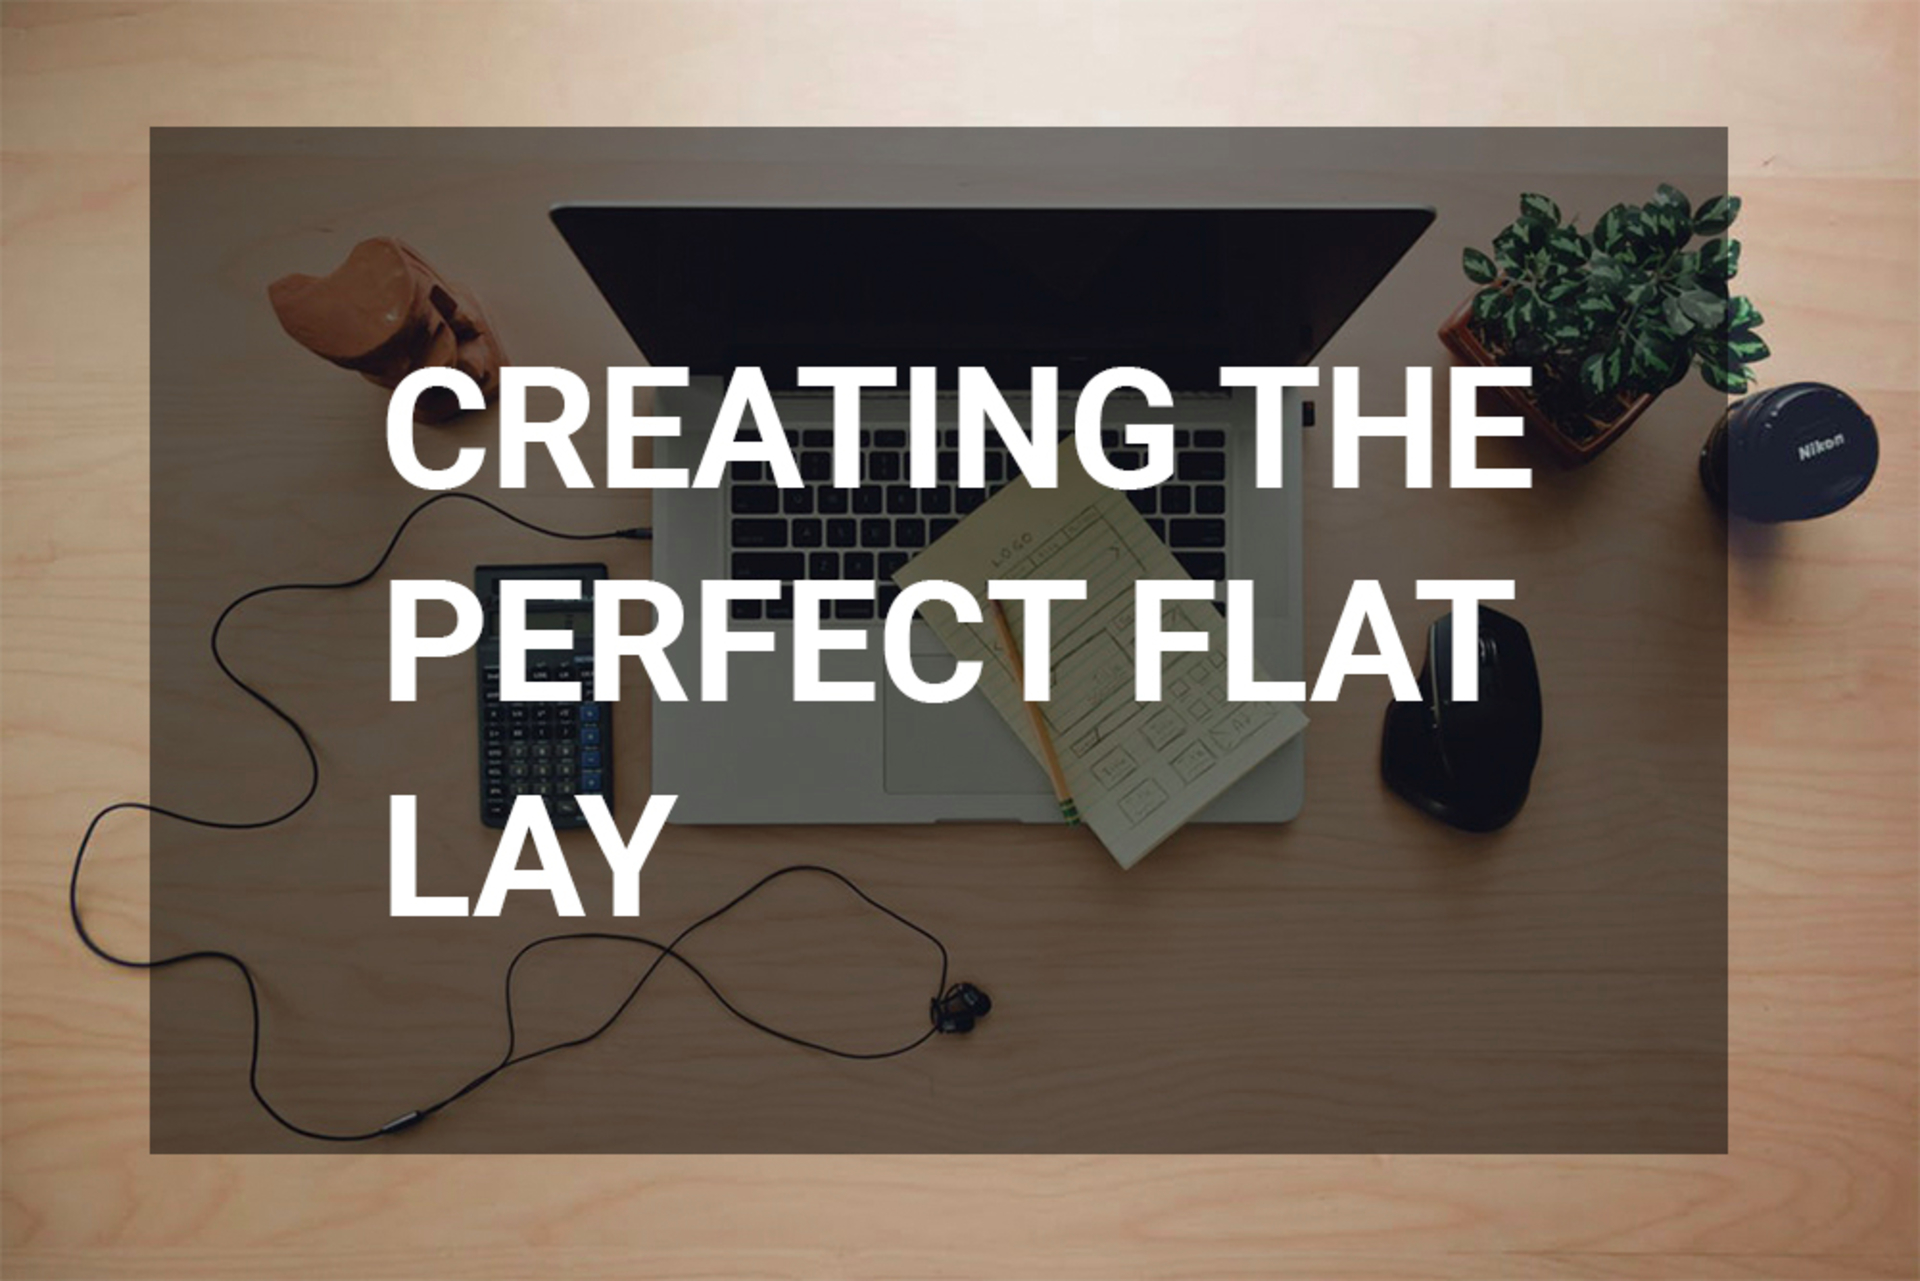 Creating the perfect flat lay image